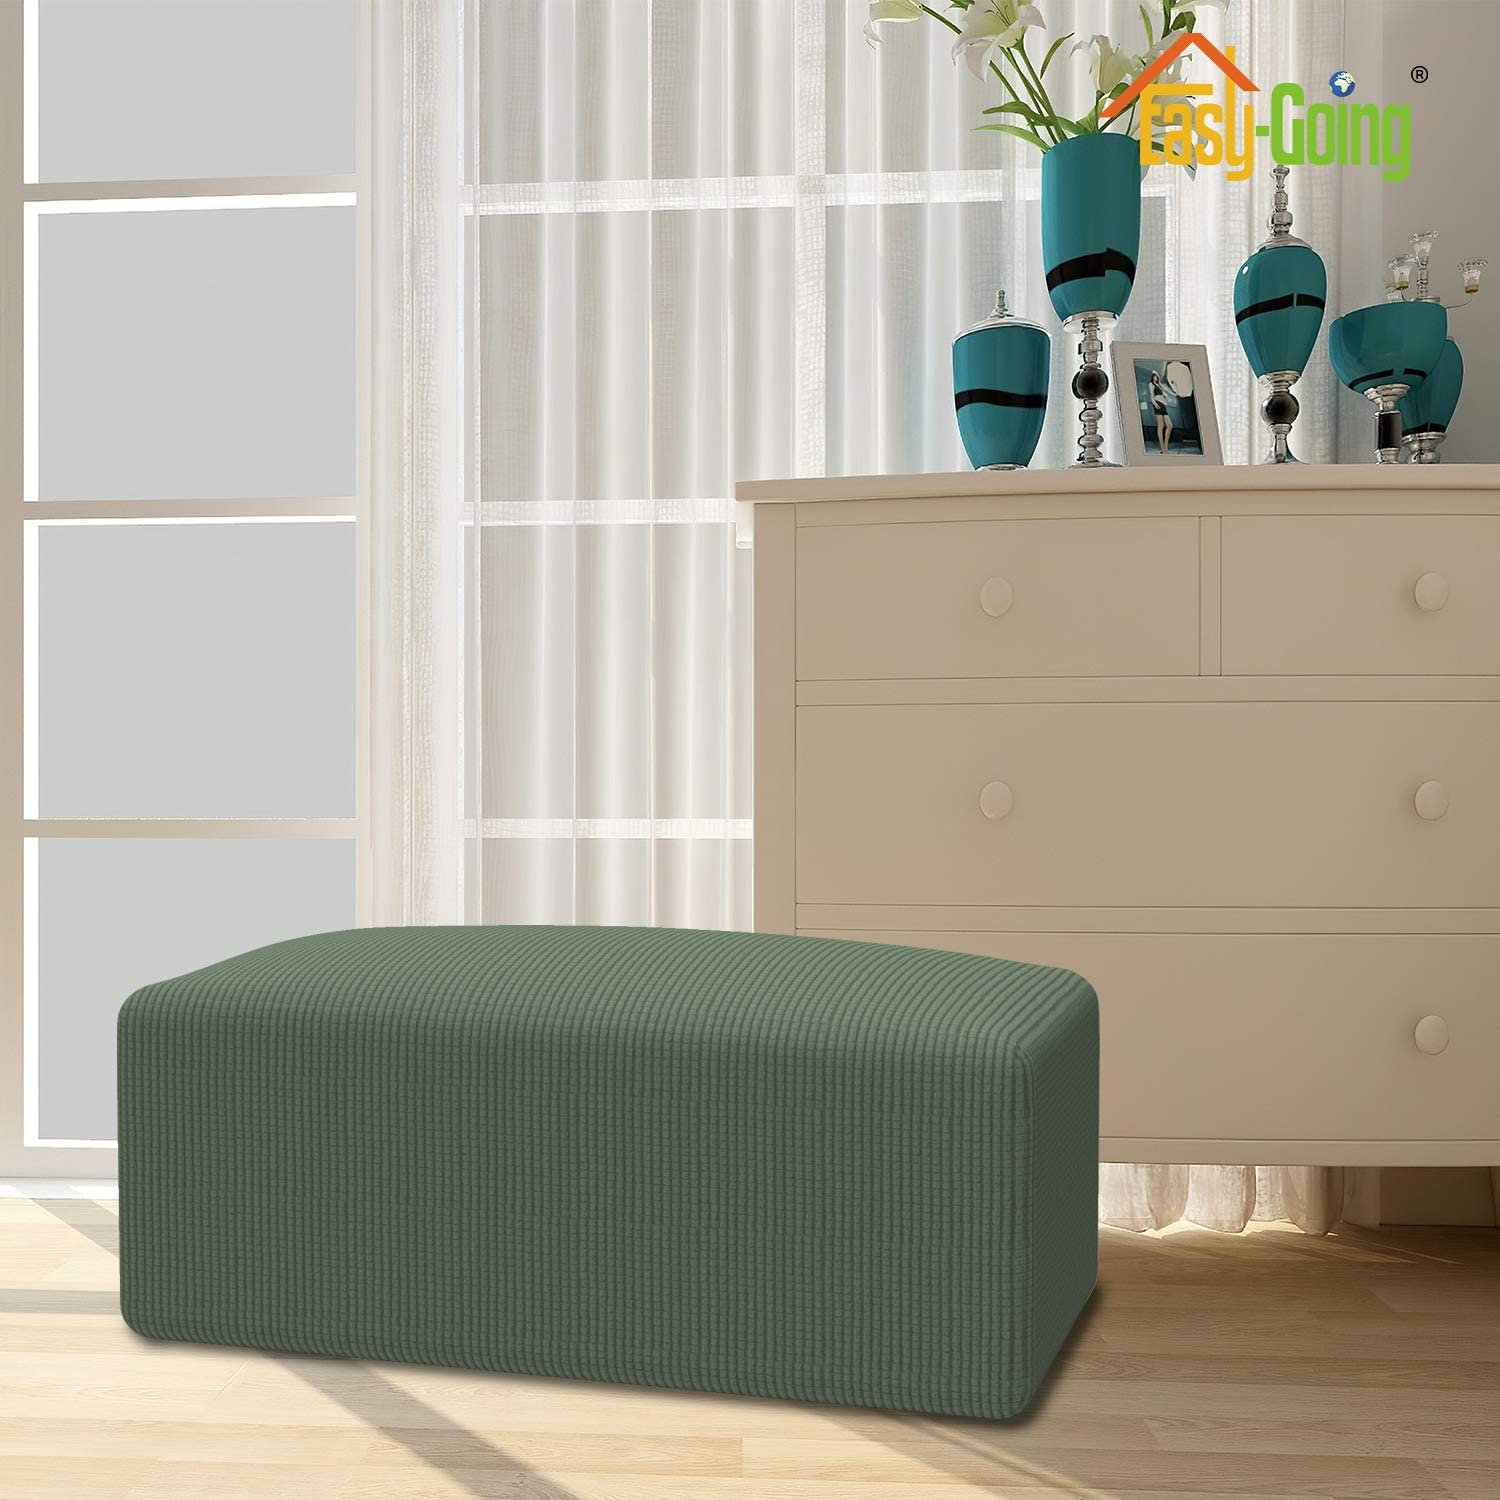 Ottoman S,Wine Easy-Going Stretch Ottoman Cover Folding Storage Stool Furniture Protector Soft Rectangle slipcover with Elastic Bottom